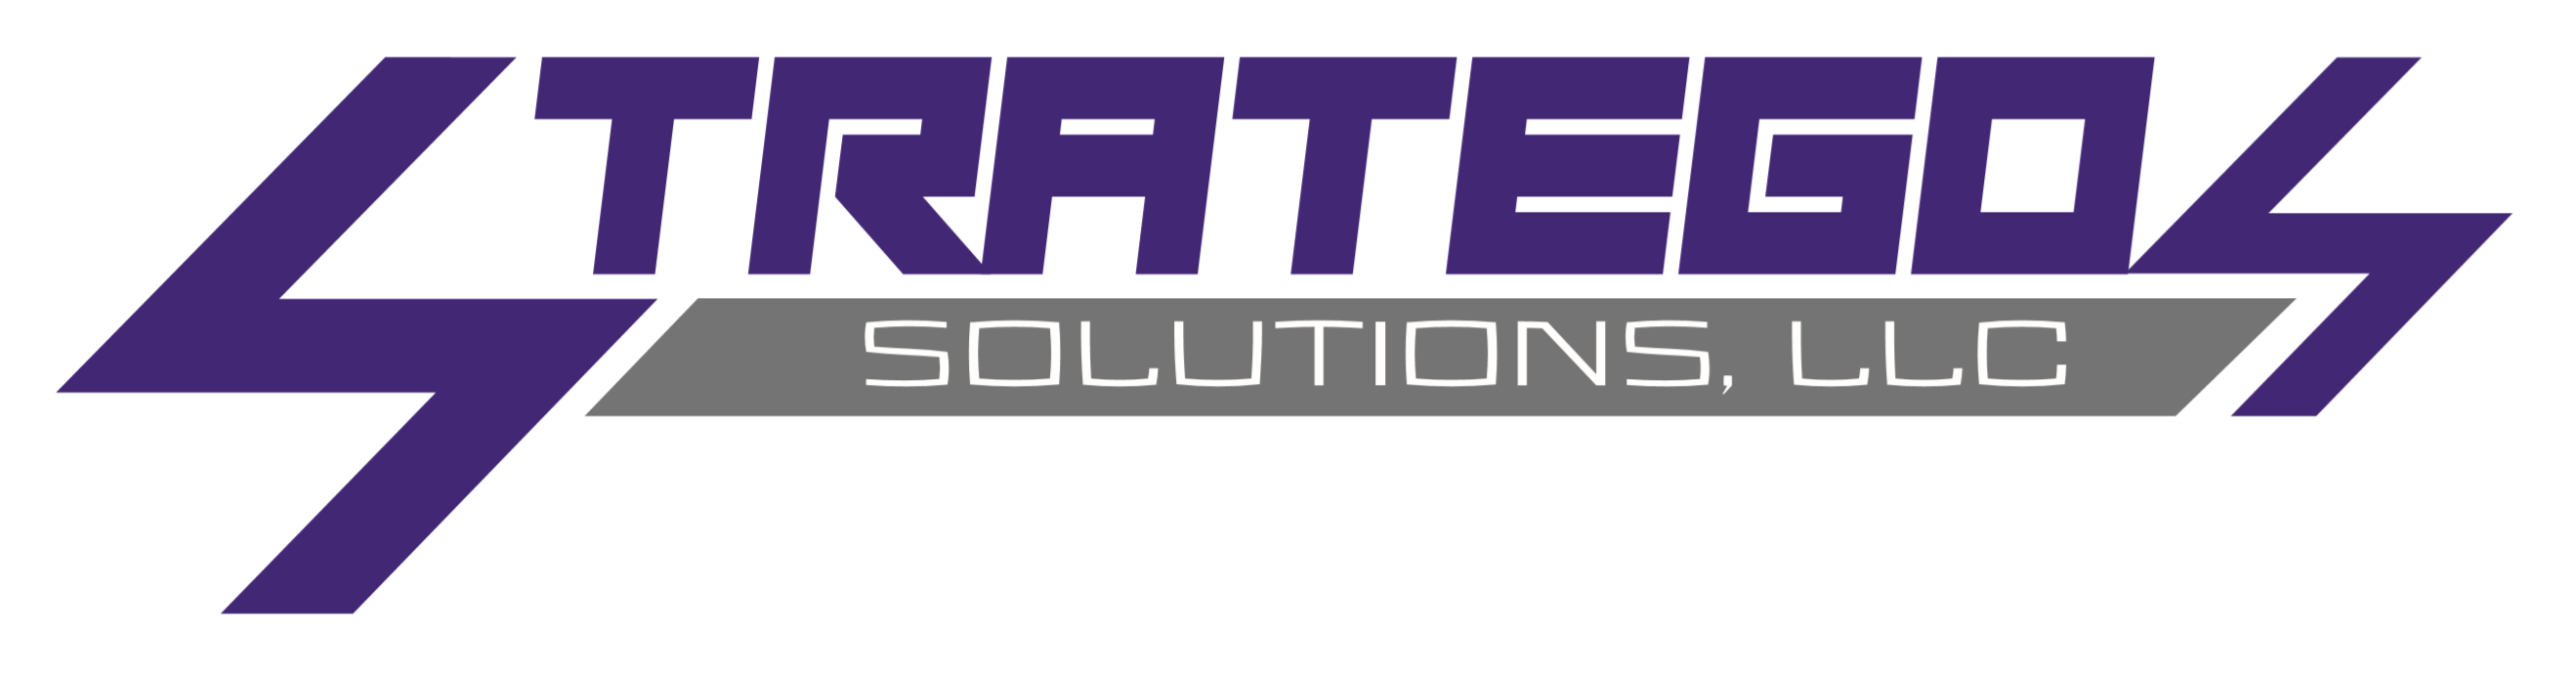 Full Logo Large 20200417 Home for Websites, Software and Analytics 1 It has been a pleasure working with you thus far. I have worked with many individuals in this industry that are considered the best and you have blown them away as a whole.